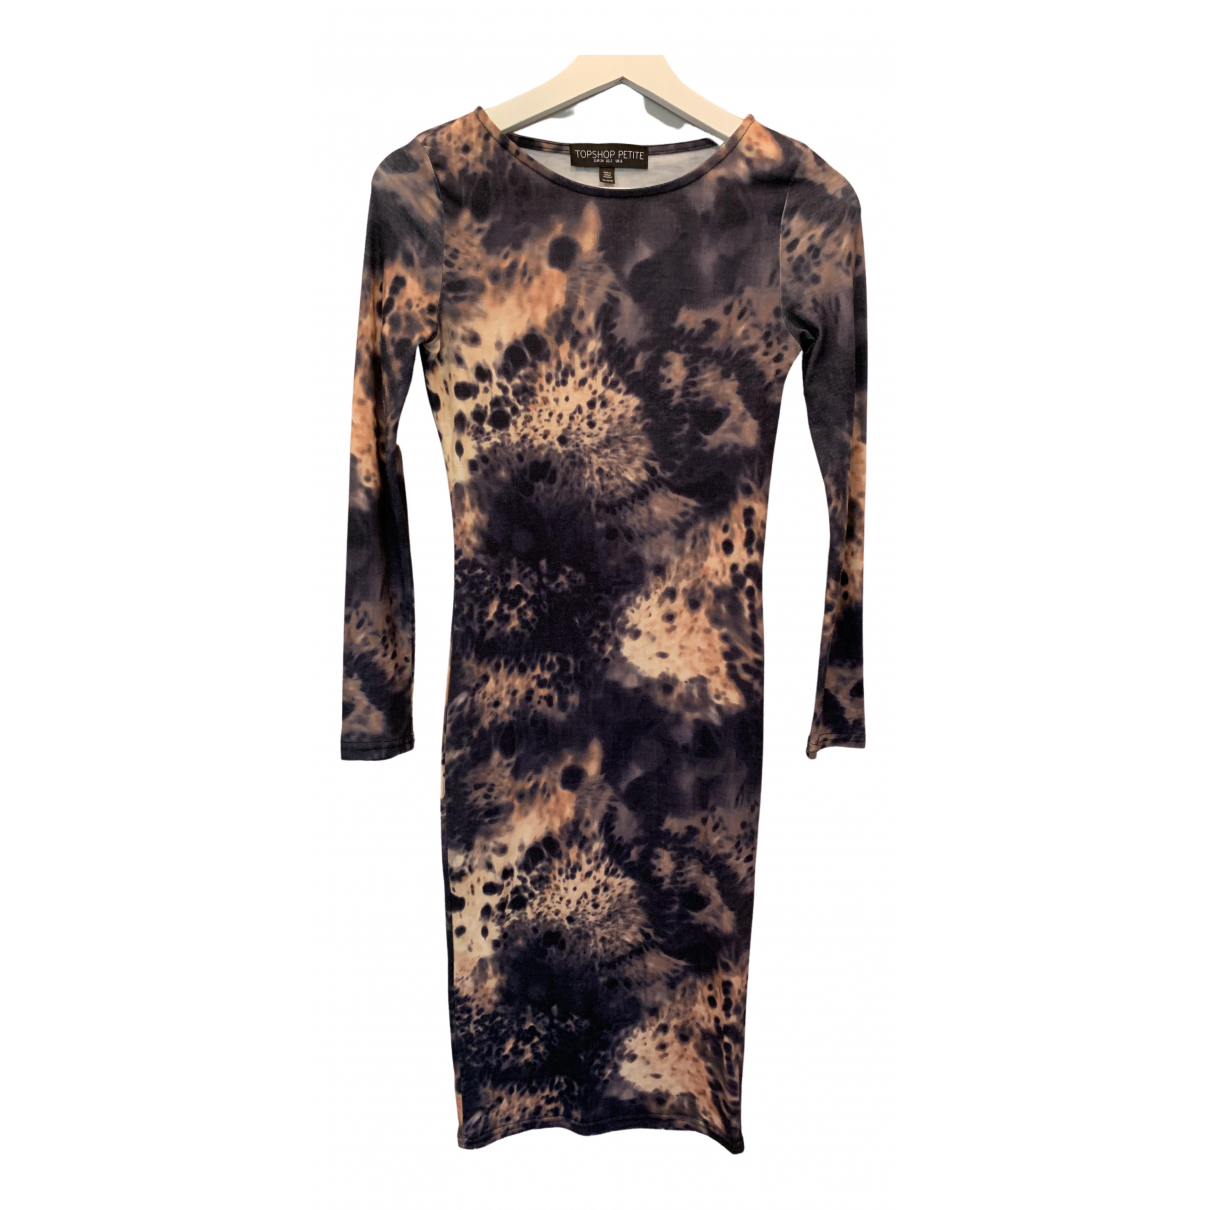 tophop N Multicolour dress for Women 6 UK